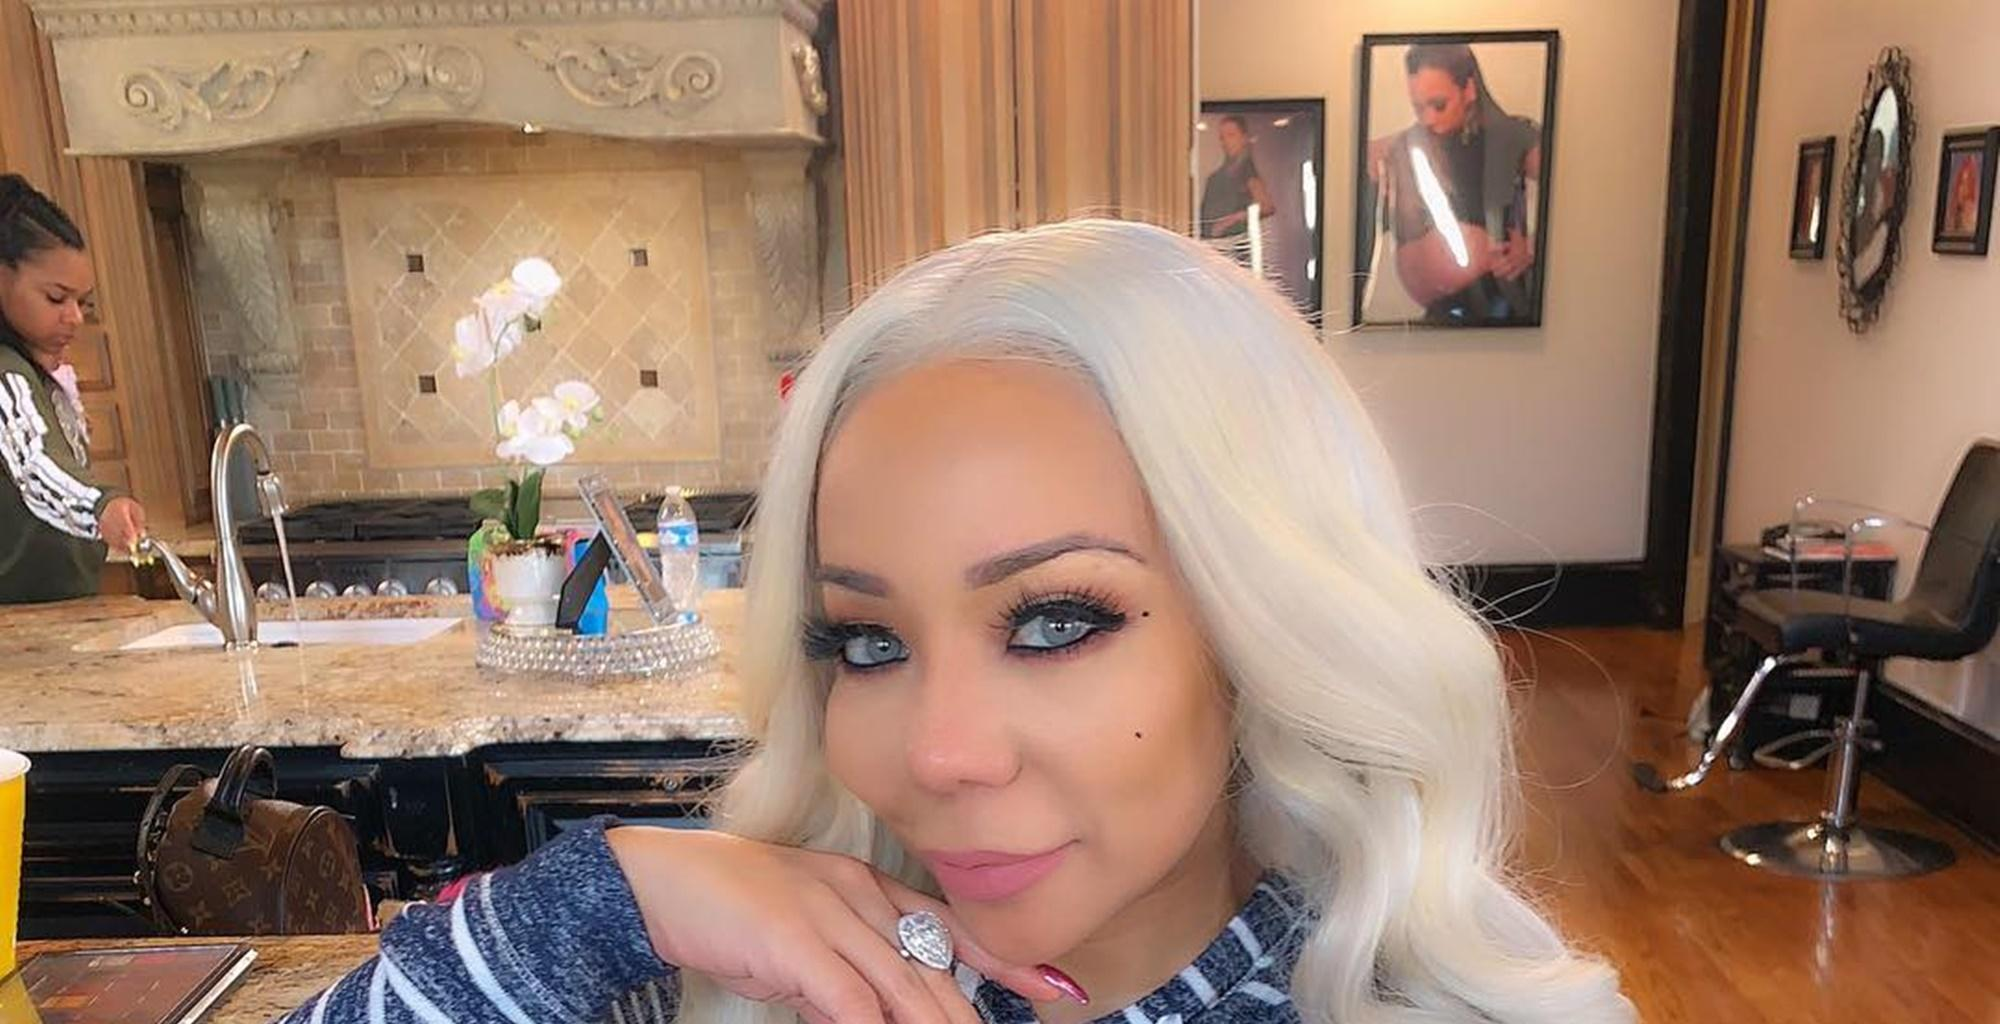 Tiny Harris Shares The Perfect Video To Honor The Irreplaceable Women In Her Life